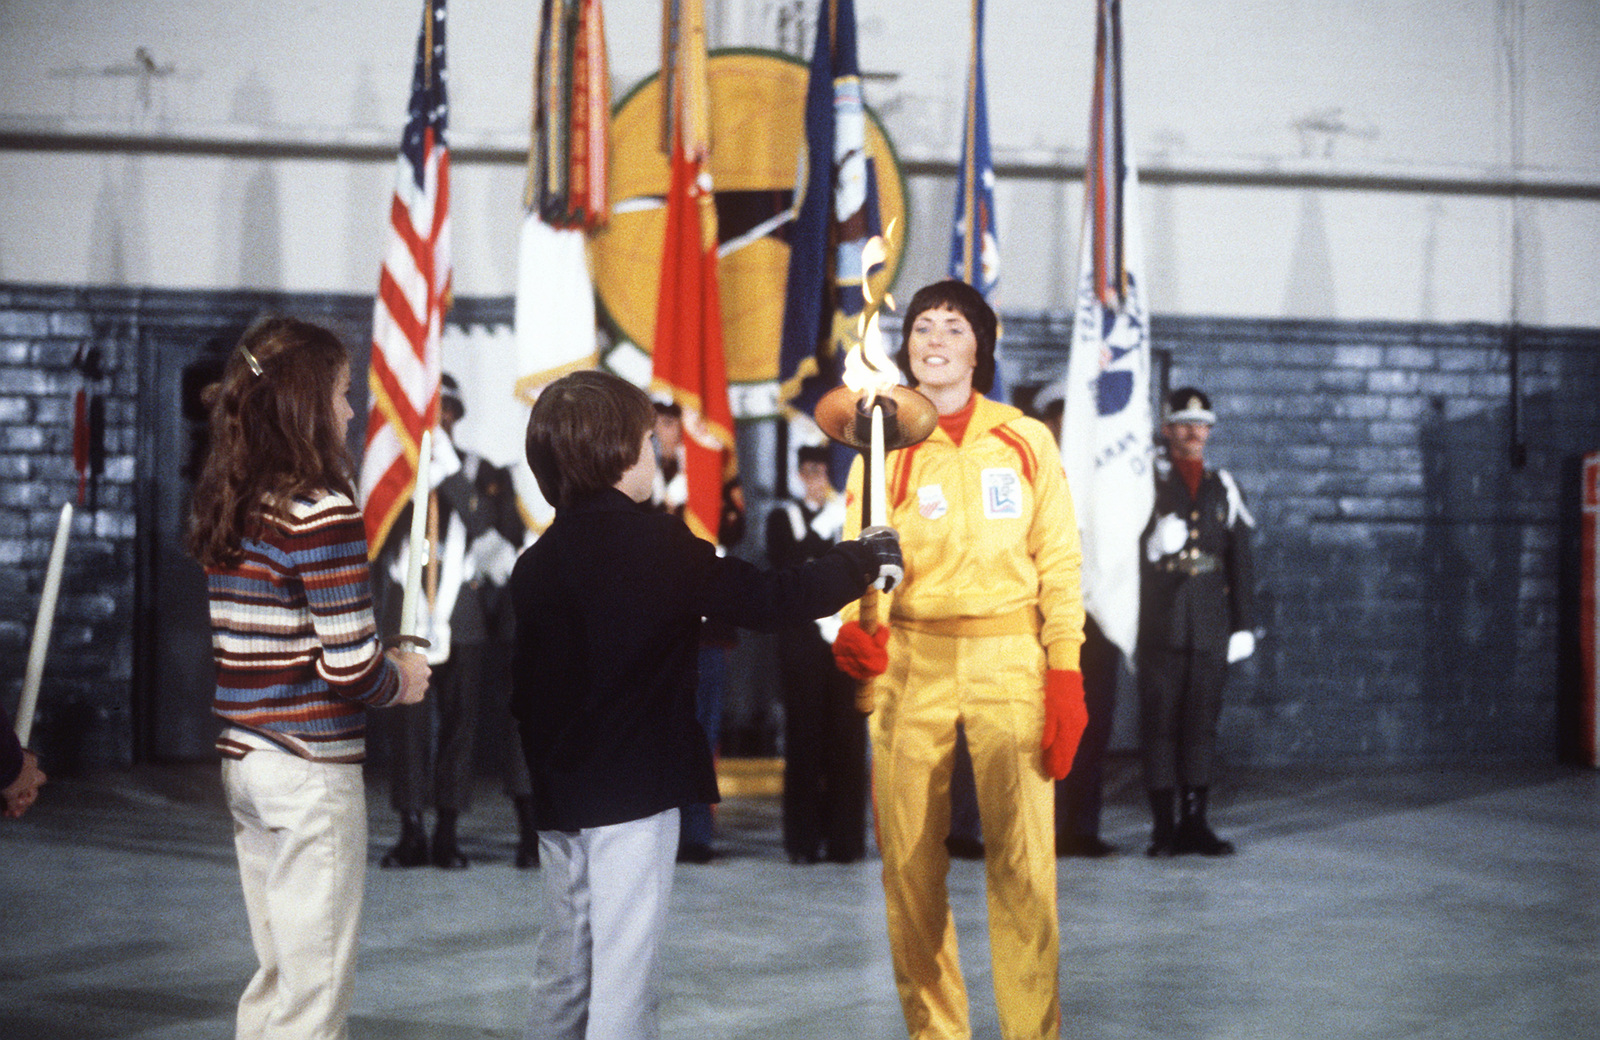 First Olympic torchbearer Sandy Norris, after her relay, lights children's candles from the flame at the flame arrival ceremony. The flame, first ignited in Olympia, Greece, is carried in a series of 52 torchbearers in a 1,000-mile run from the base to Lake Placid, New York, to open the XIII Winter Olympics